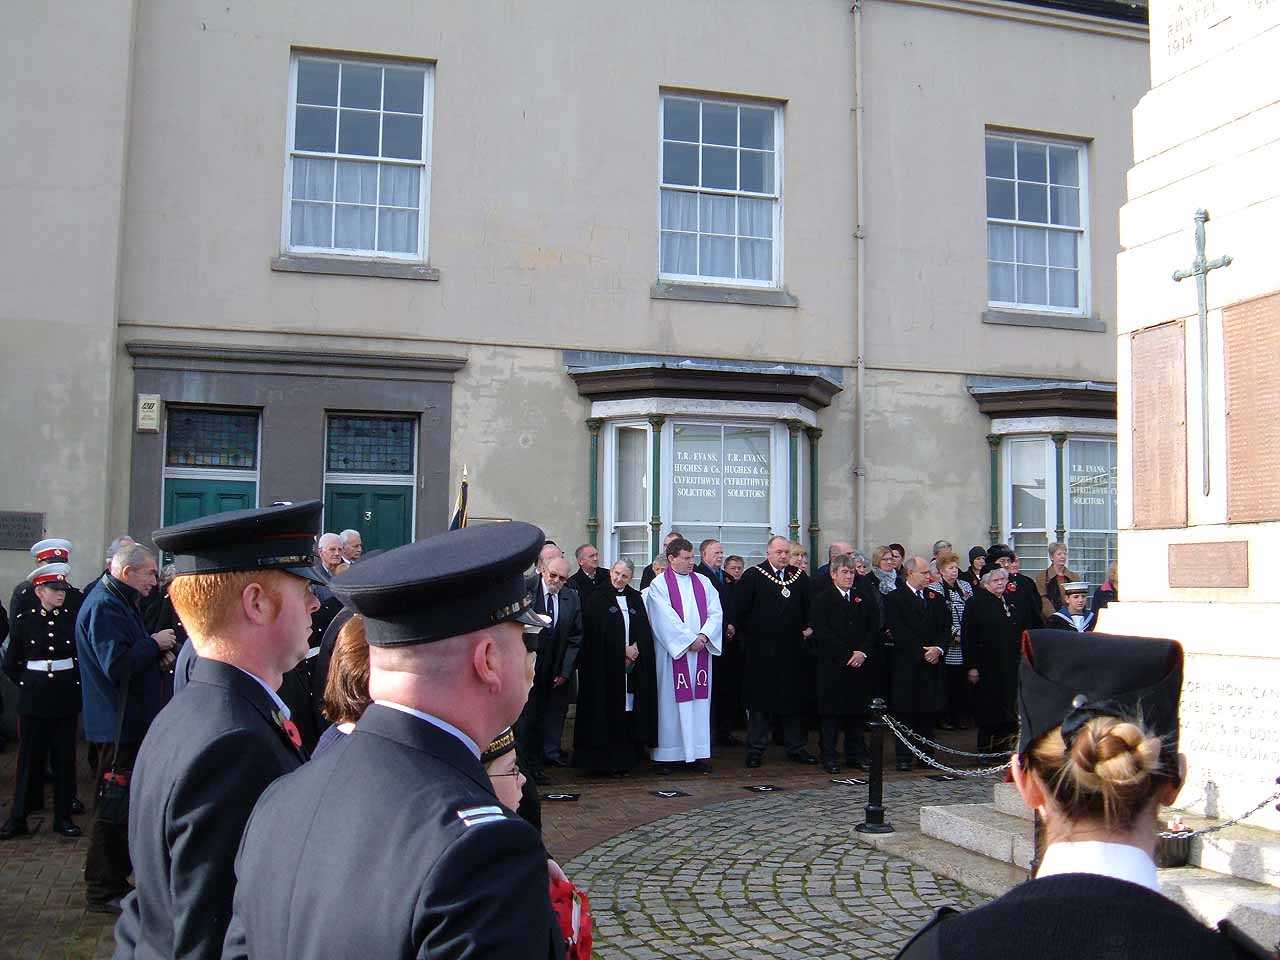 Anglesey, Holyhead, Remembrance Sunday 2006 - including Mark Wade of the Fire Service